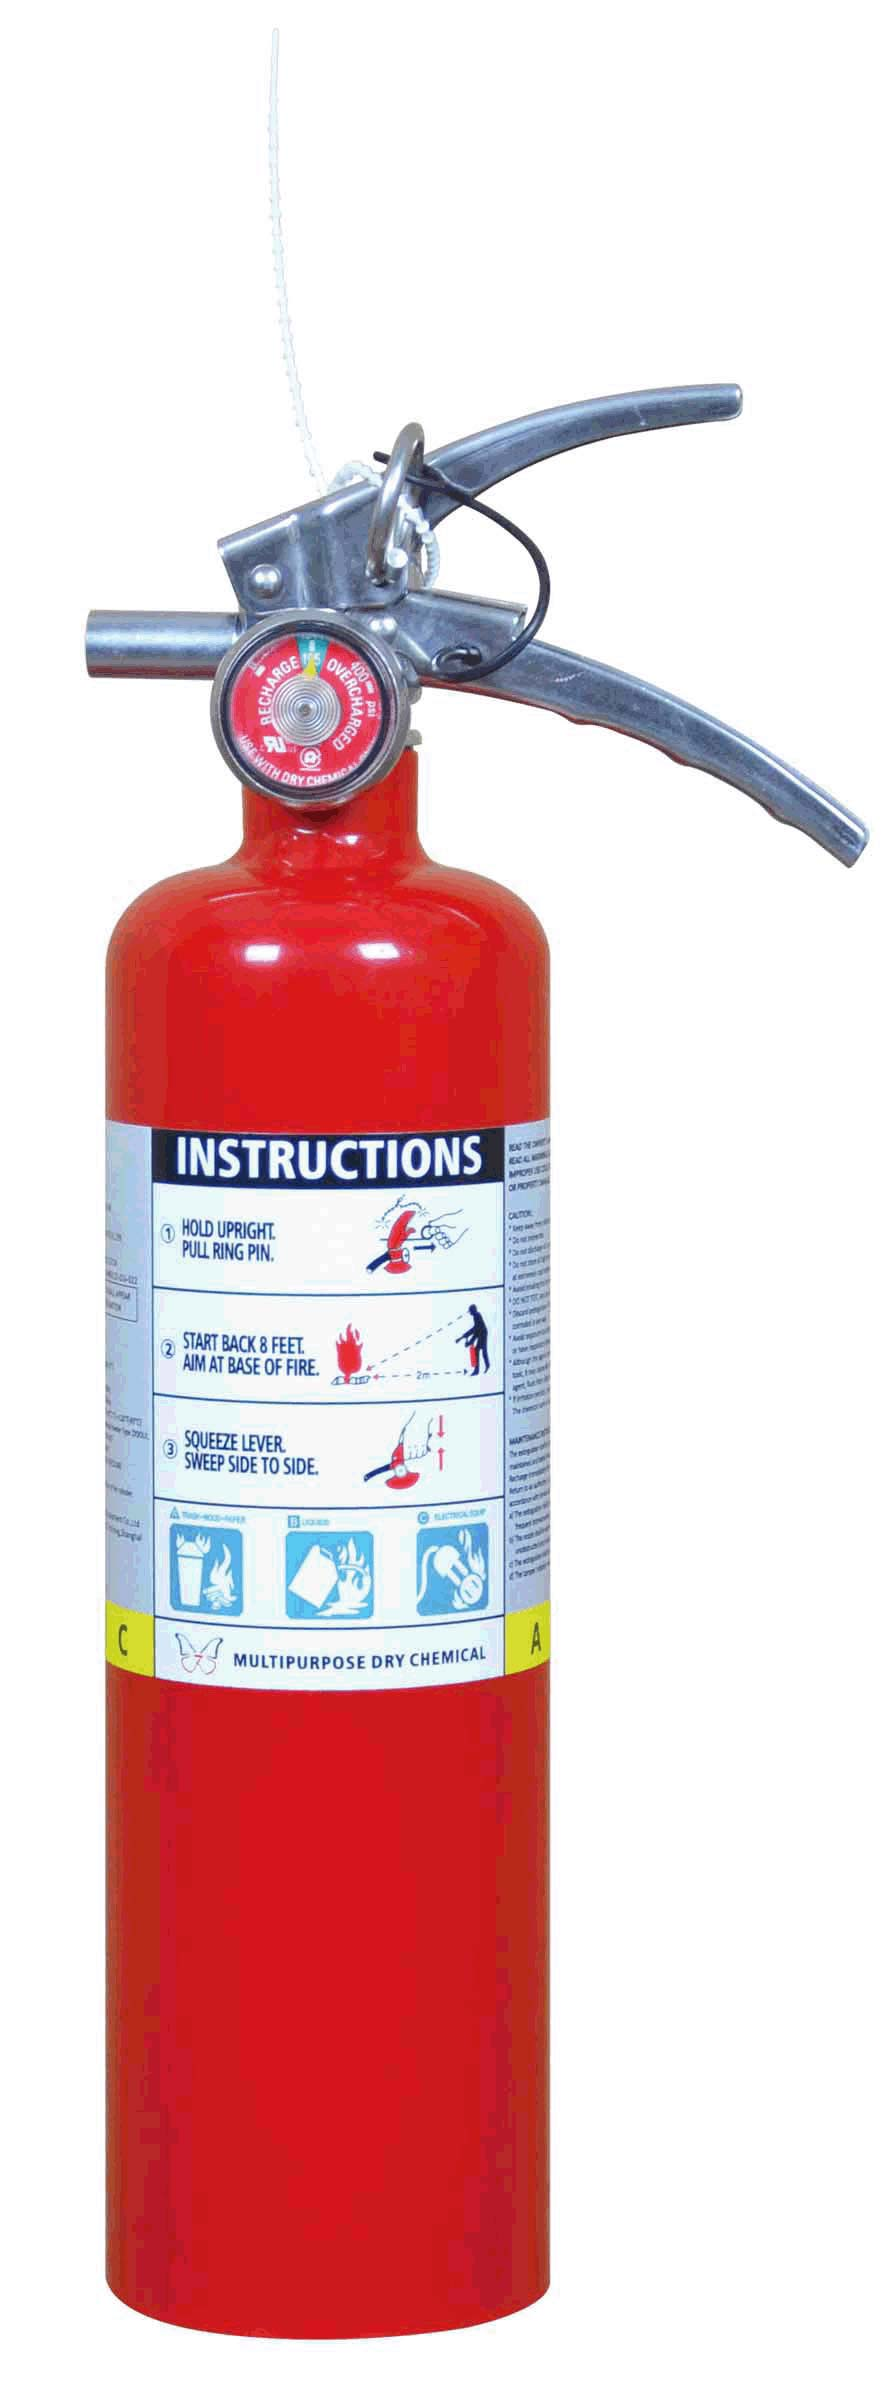 2.5LB MULTIPURPOSE DRY CHEMICAL POWER FIRE EXTINGUISHER